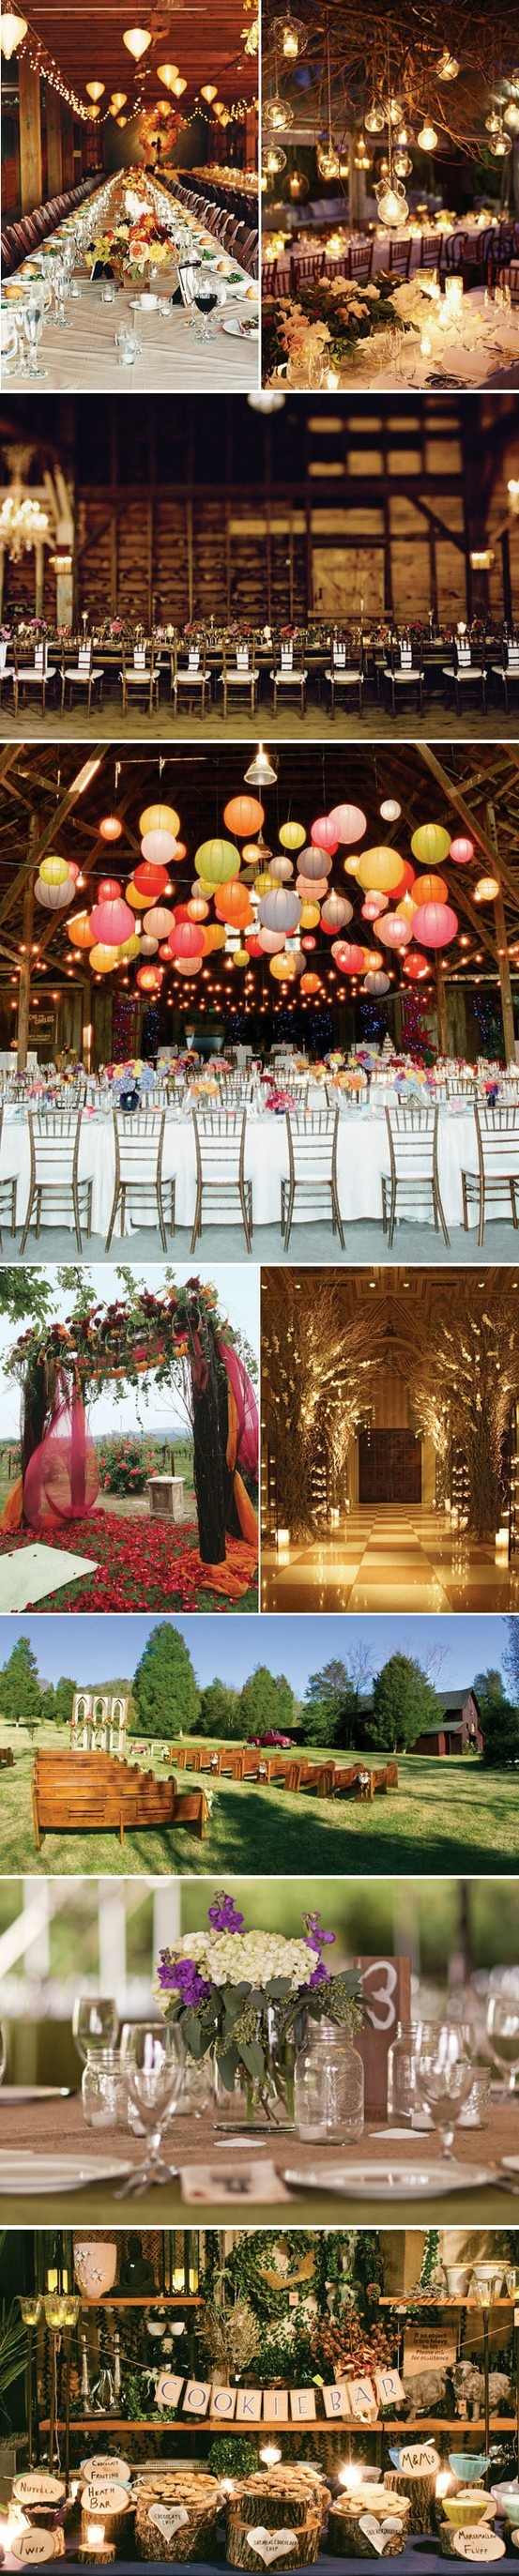 I think this is what heaven must look like G:) rustic wedding decor inspiration